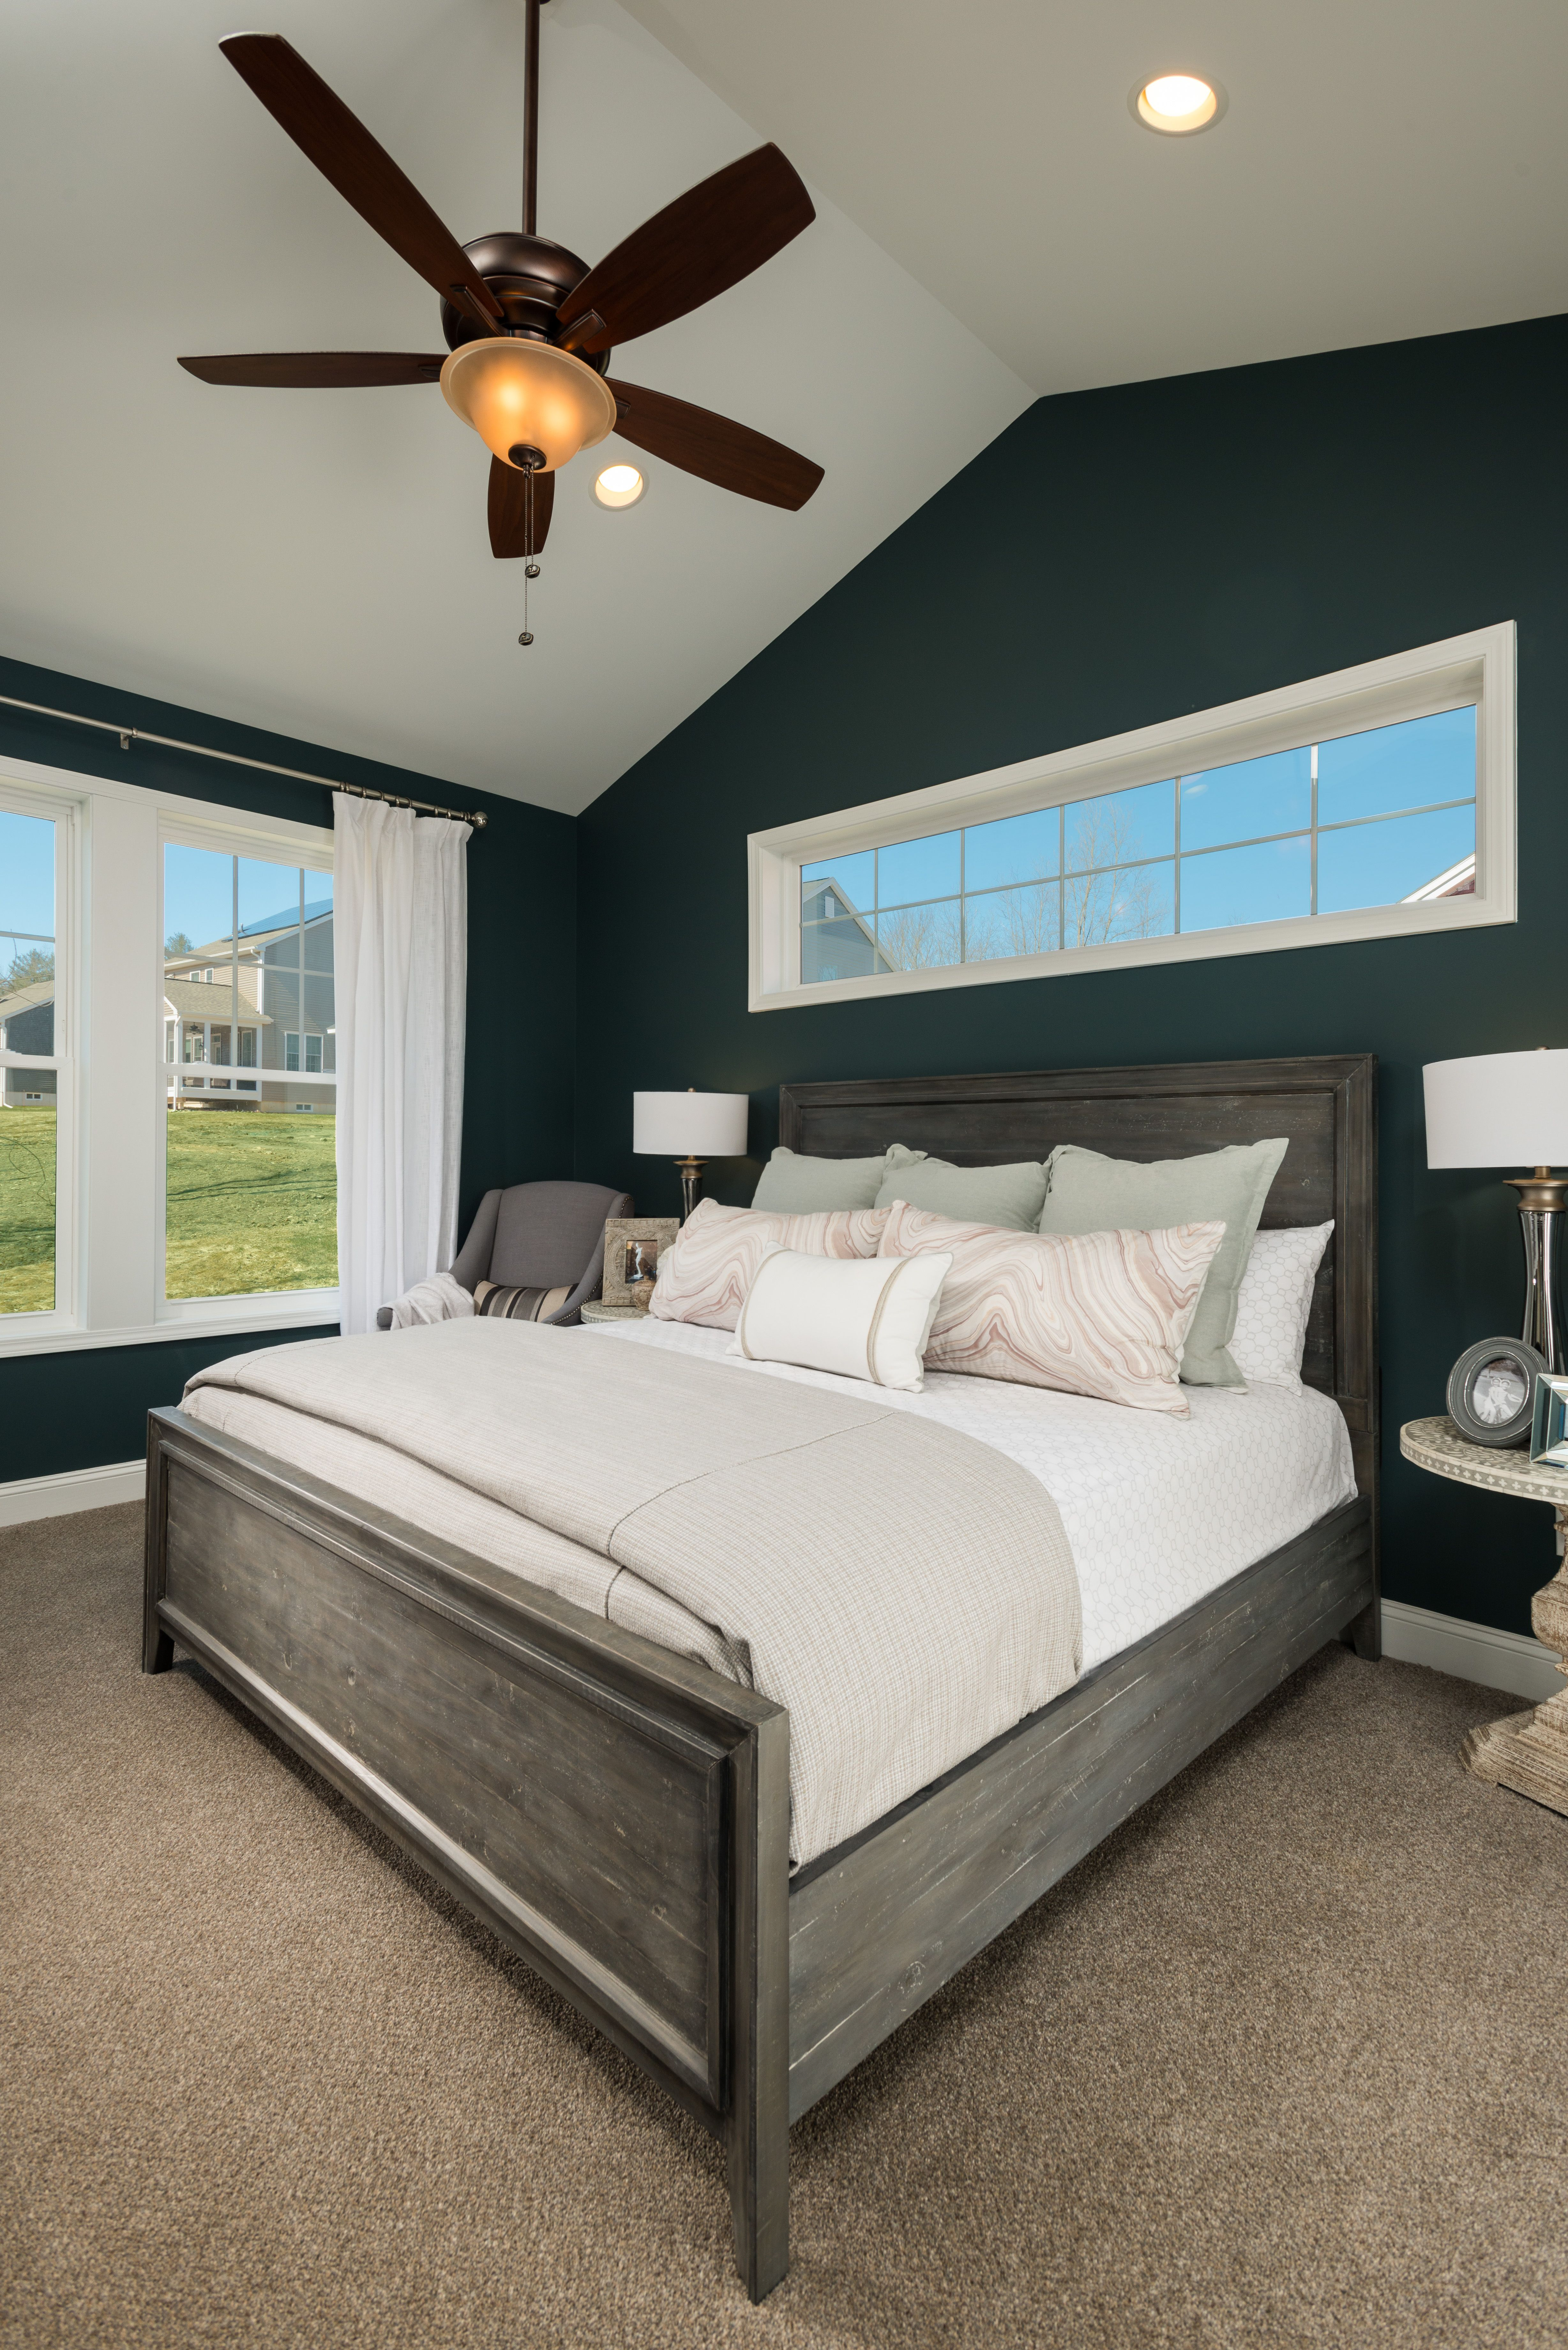 Bedroom featured in the Concord By Belmonte Builders in Albany-Saratoga, NY